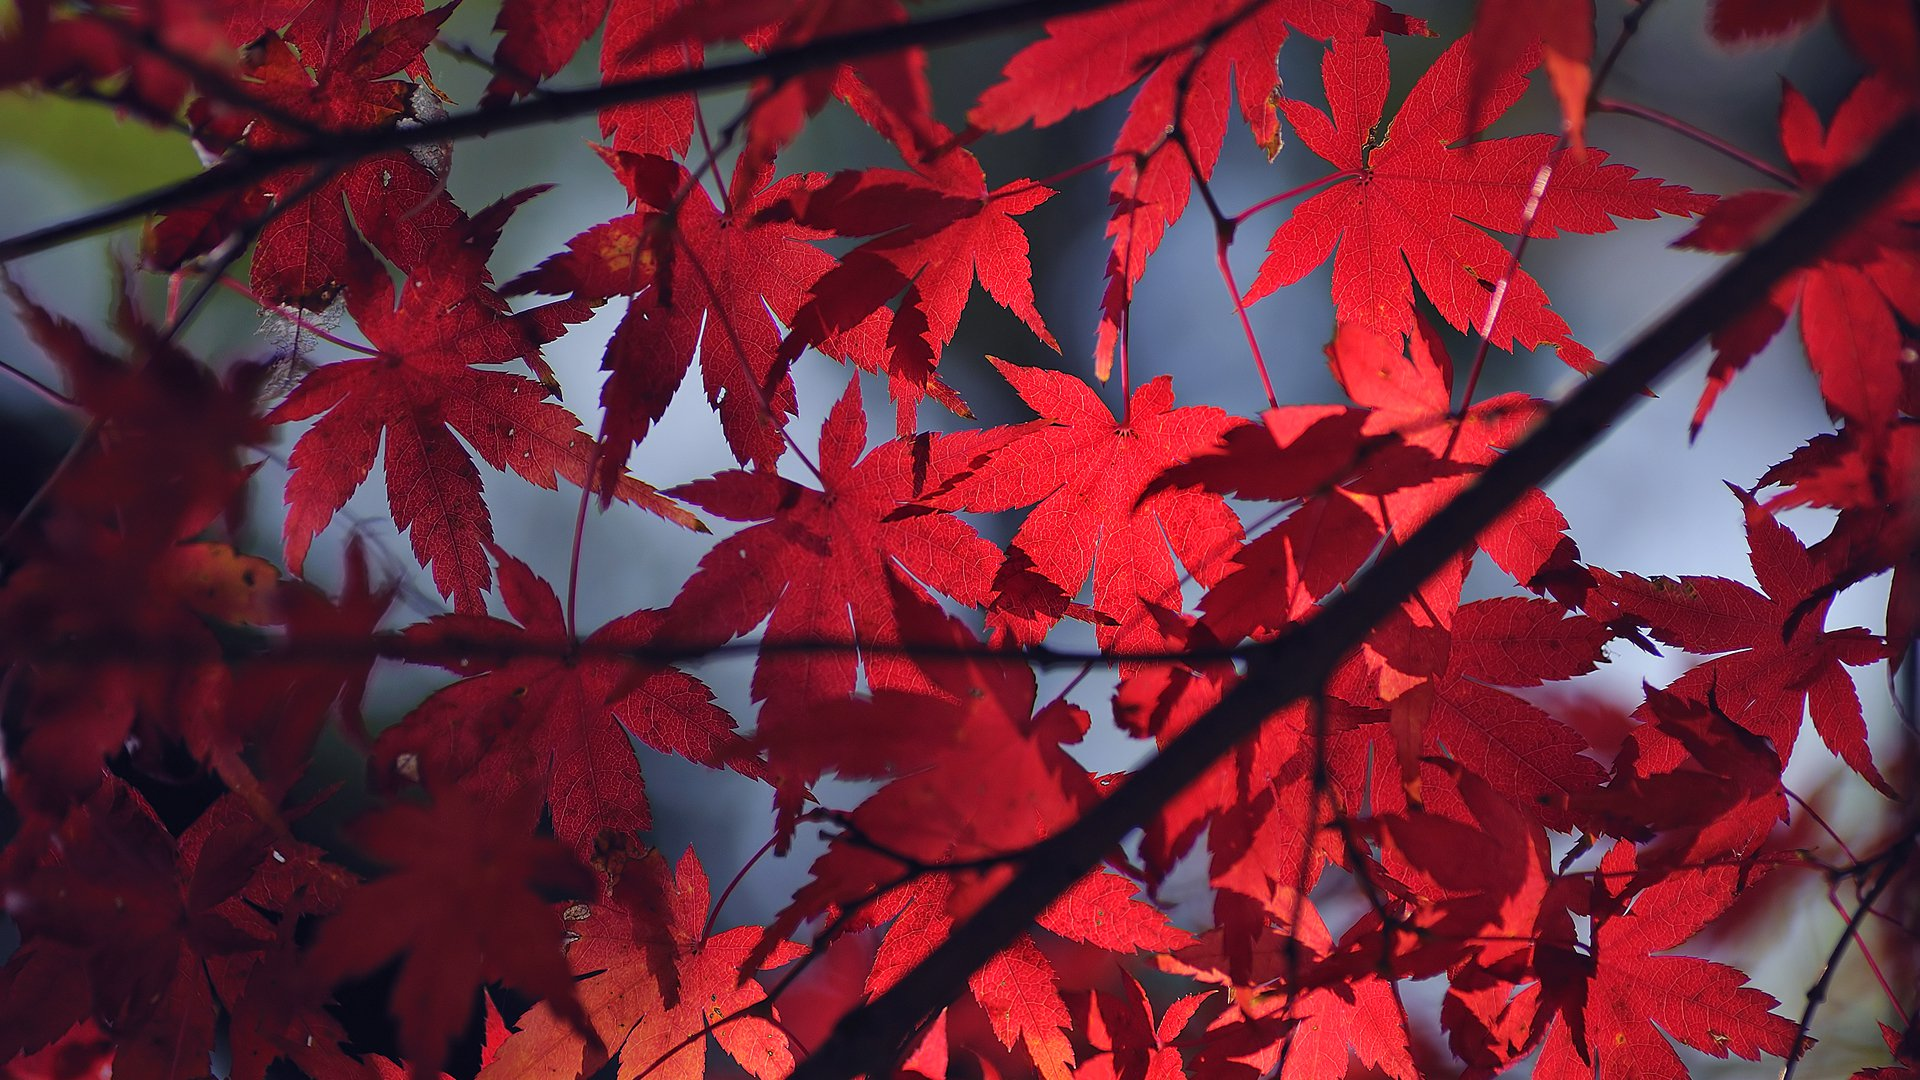 autums-backgroud-full-red-leaves